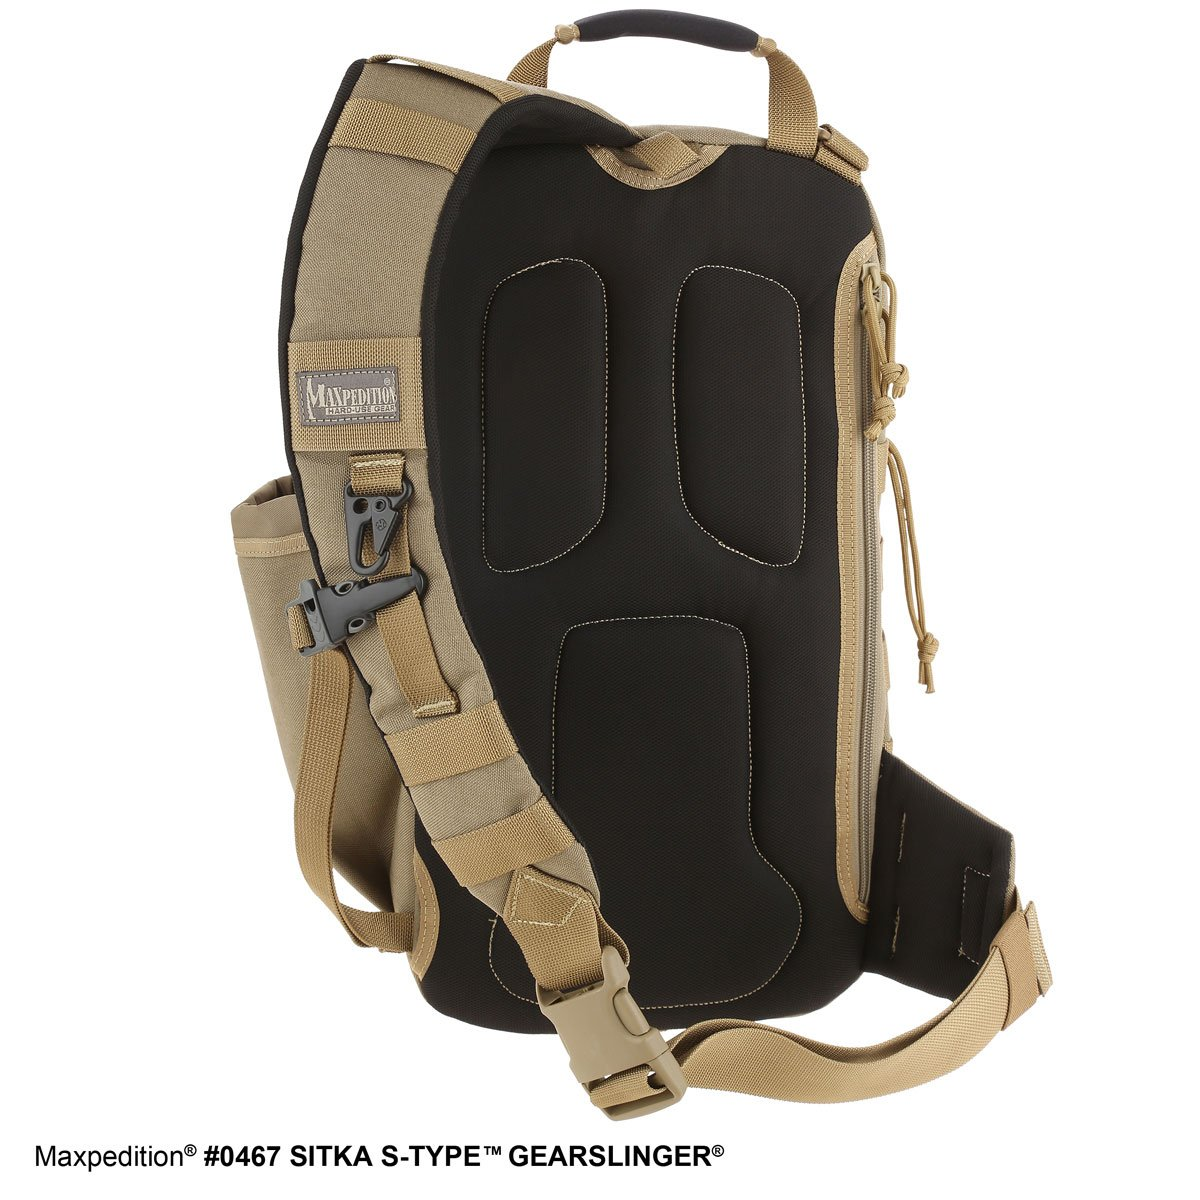 Maxpedition Sitka S-type (khaki) - Mochila de senderismo, color caqui, talla 46 in: Amazon.es: Deportes y aire libre